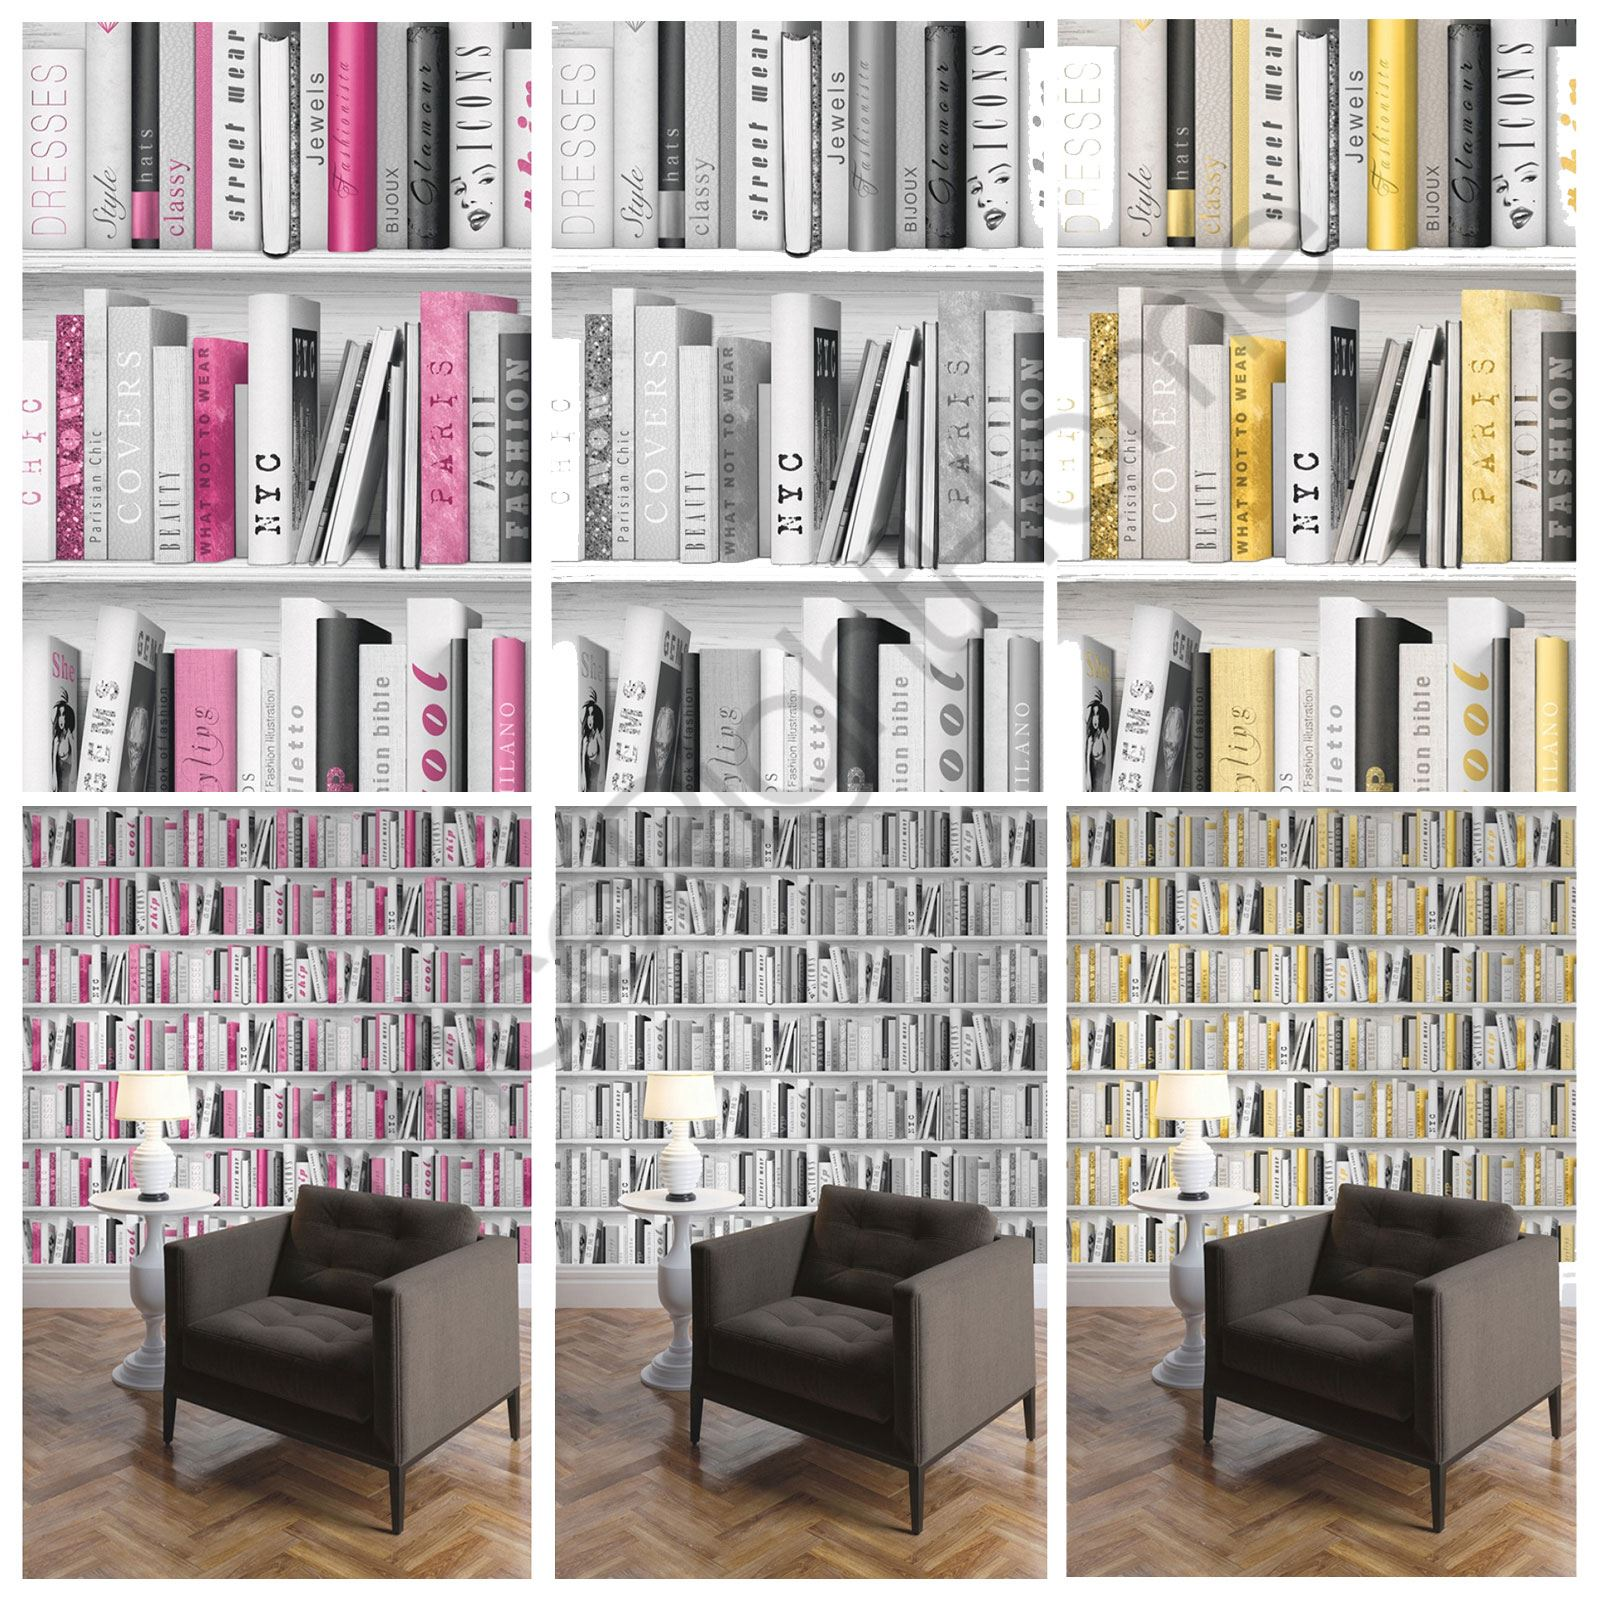 Best 41 Bookshelves Wallpaper On Hipwallpaper Bookshelves